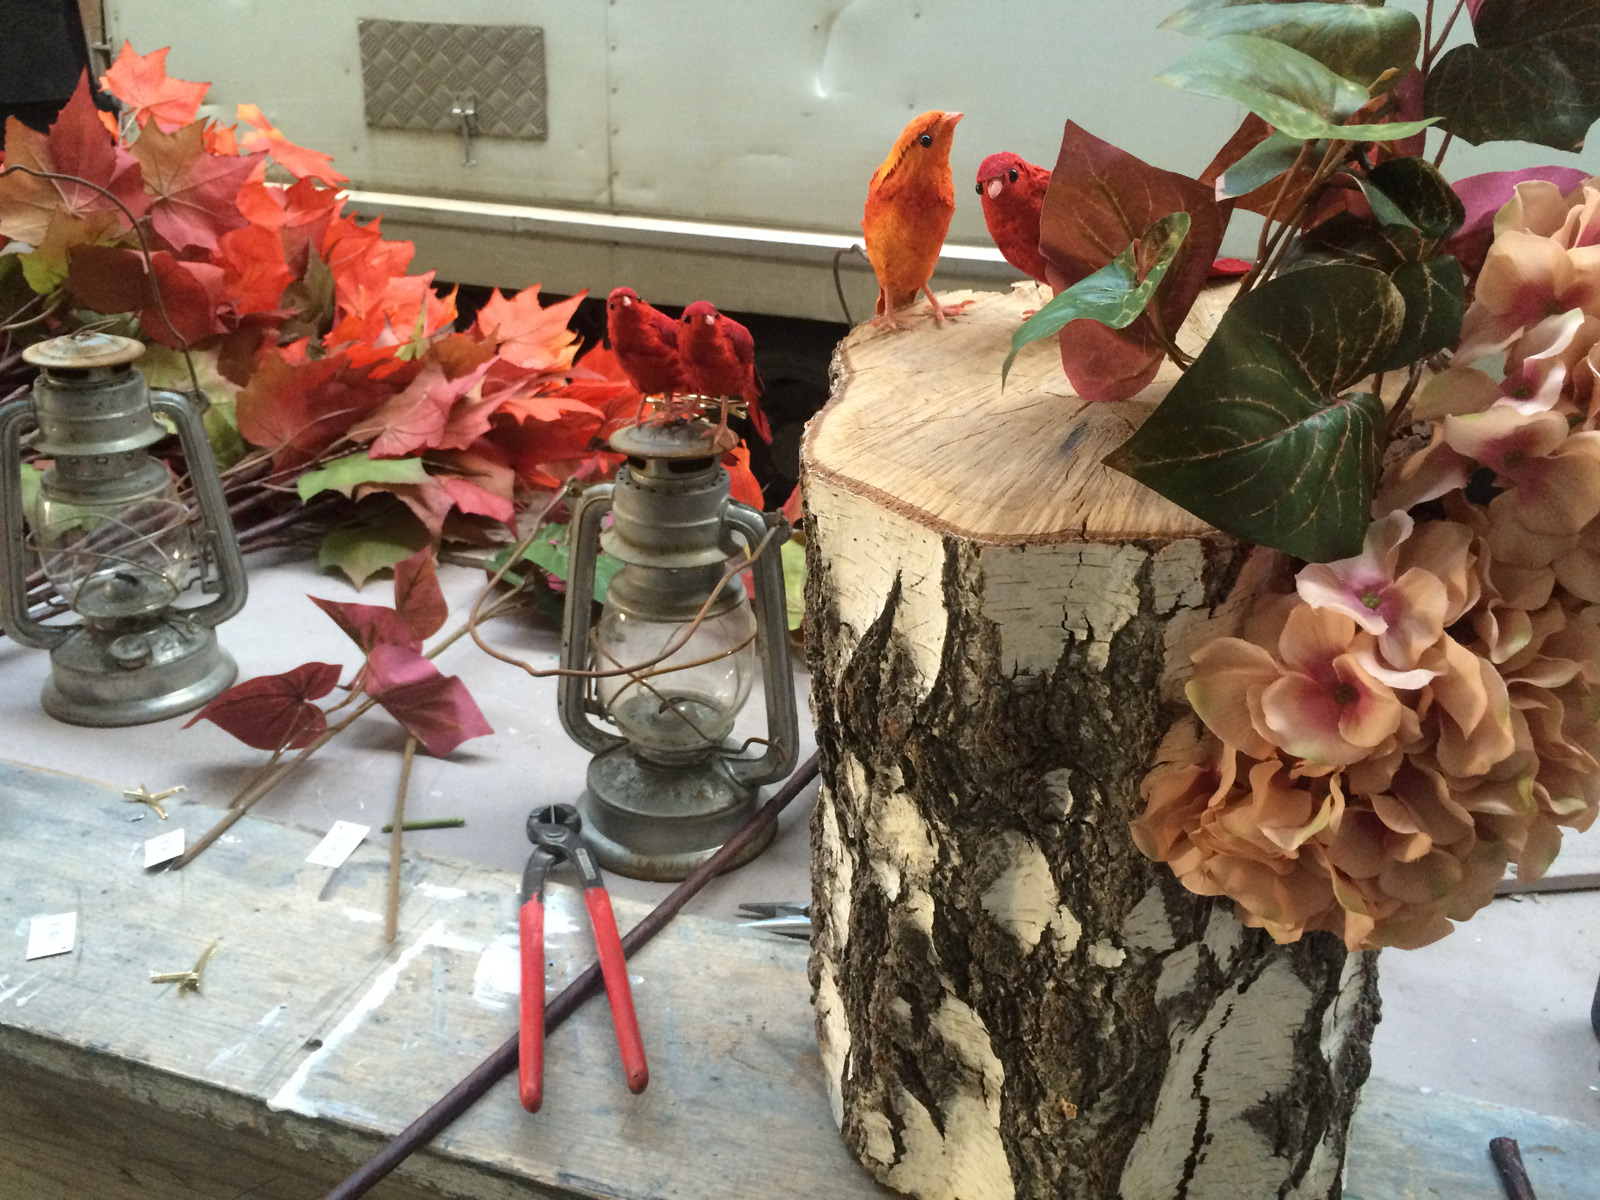 Eye-catching window display to promote the autumn season with a rustic timber, autumnal colored birds, and flowers.